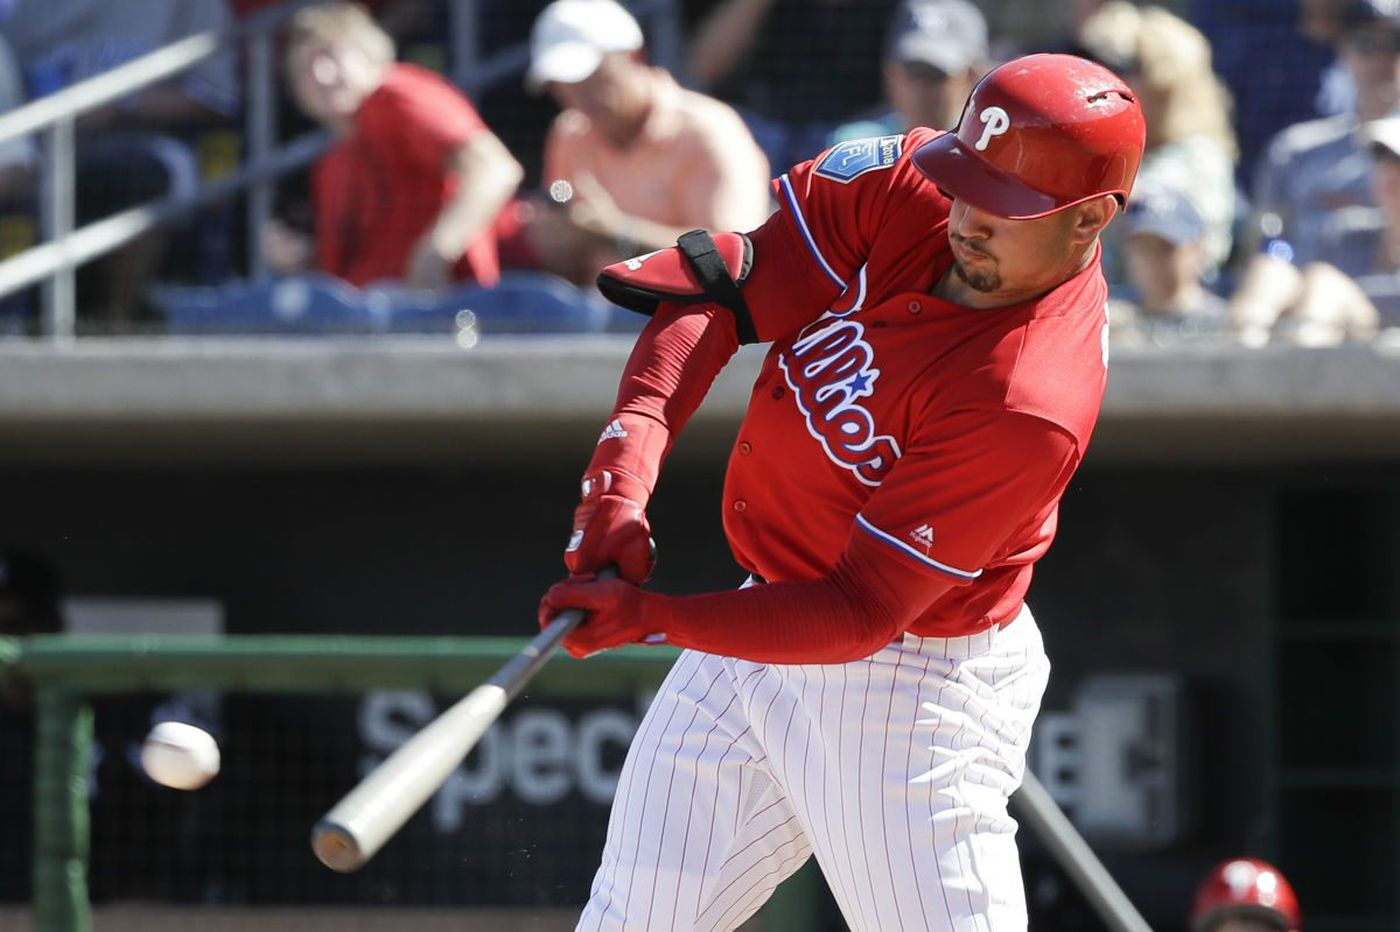 Phillies drop first spring meeting with Yankees